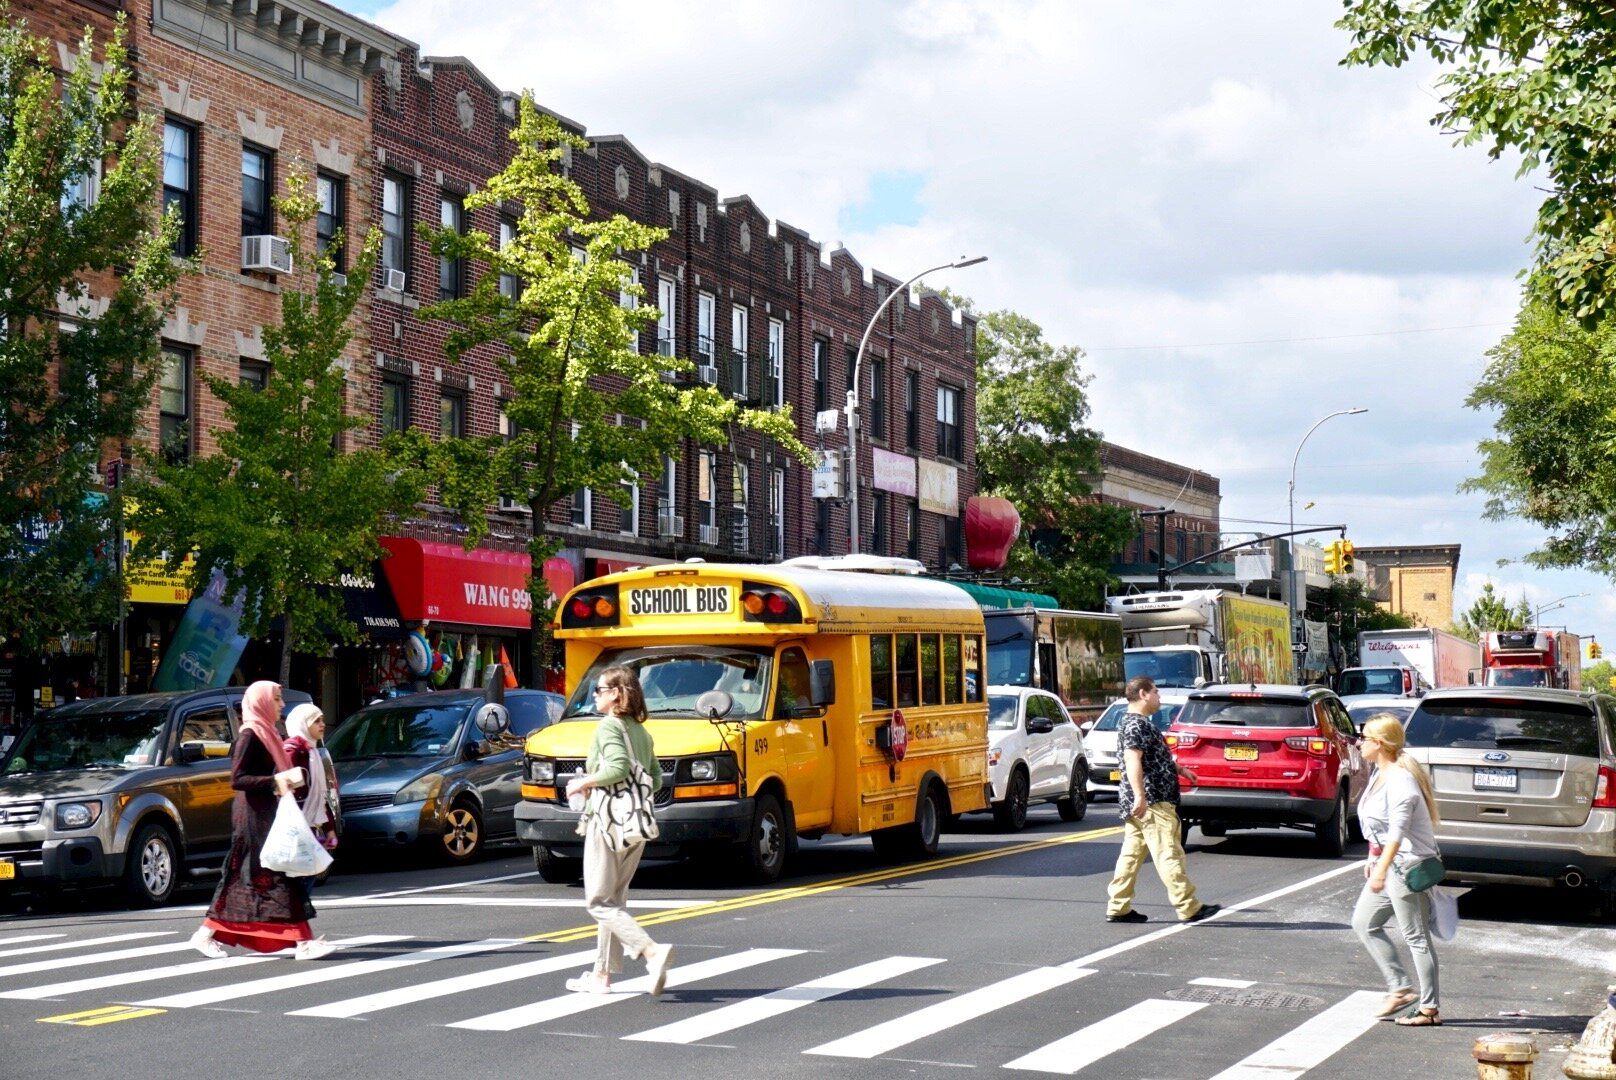 A lawsuit aims to stop the addition of express bus lanes on Fresh Pond Road, a busy commercial thoroughfare in the heart of Middle Village.  Eagle  photo by Luca Powell